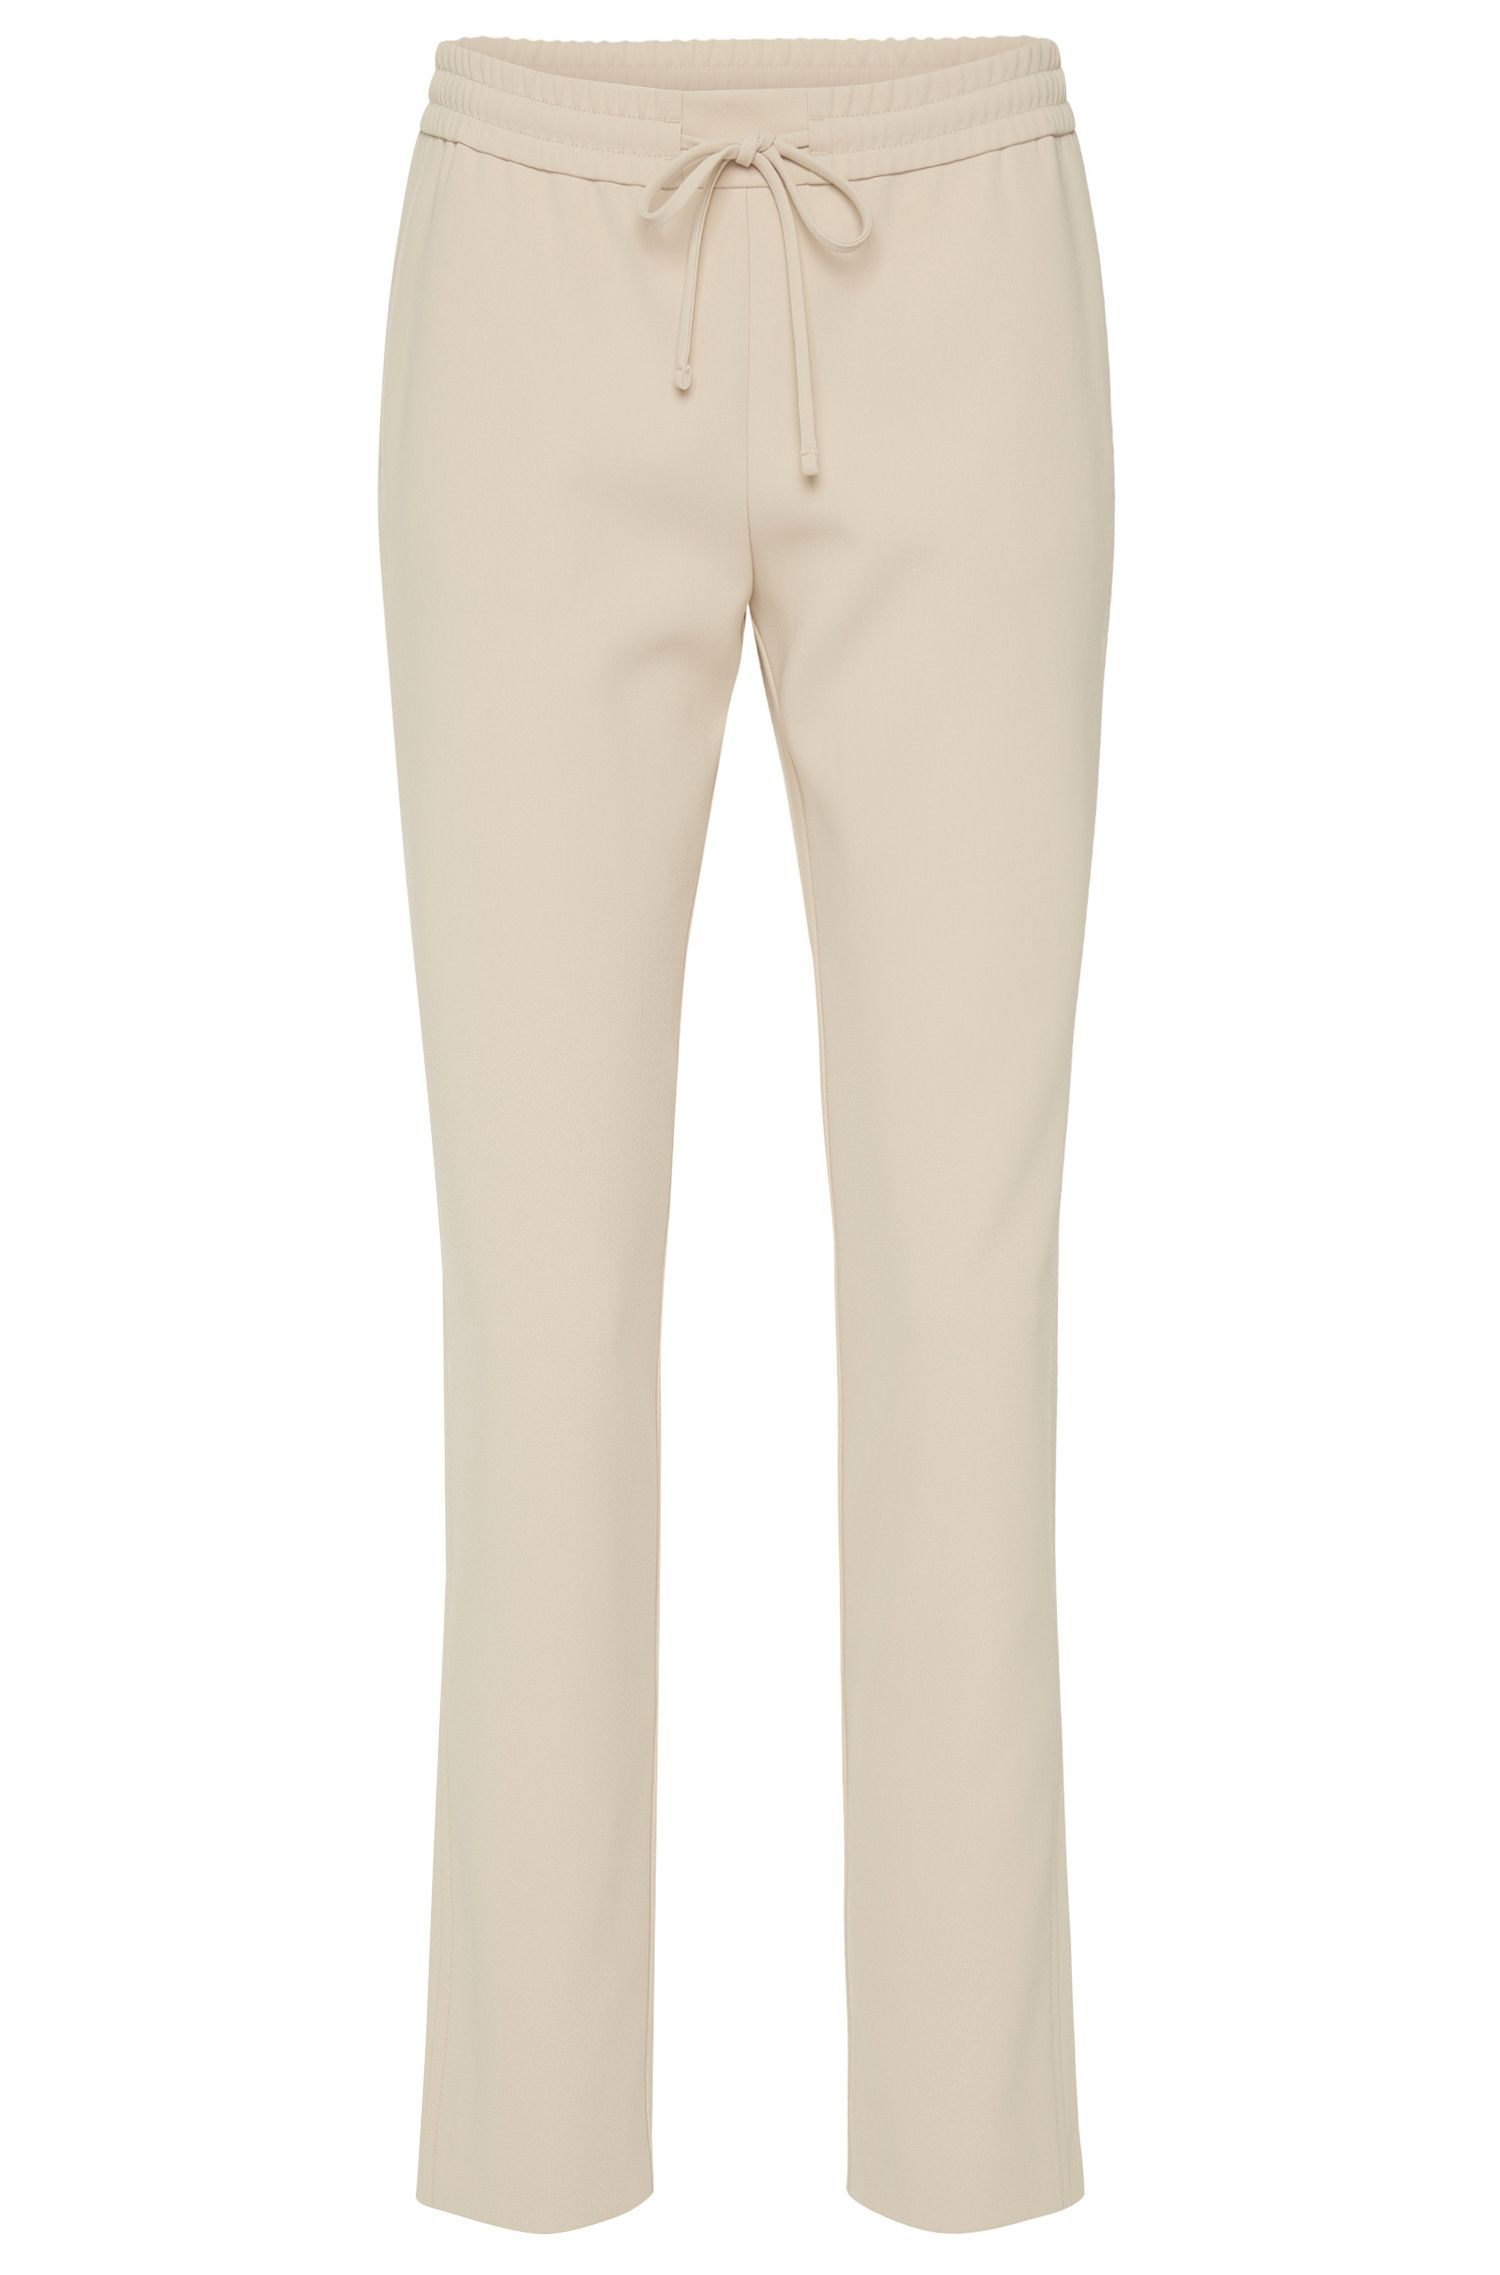 'Aryna' | Plain trousers in a material blend with drawstring waistband